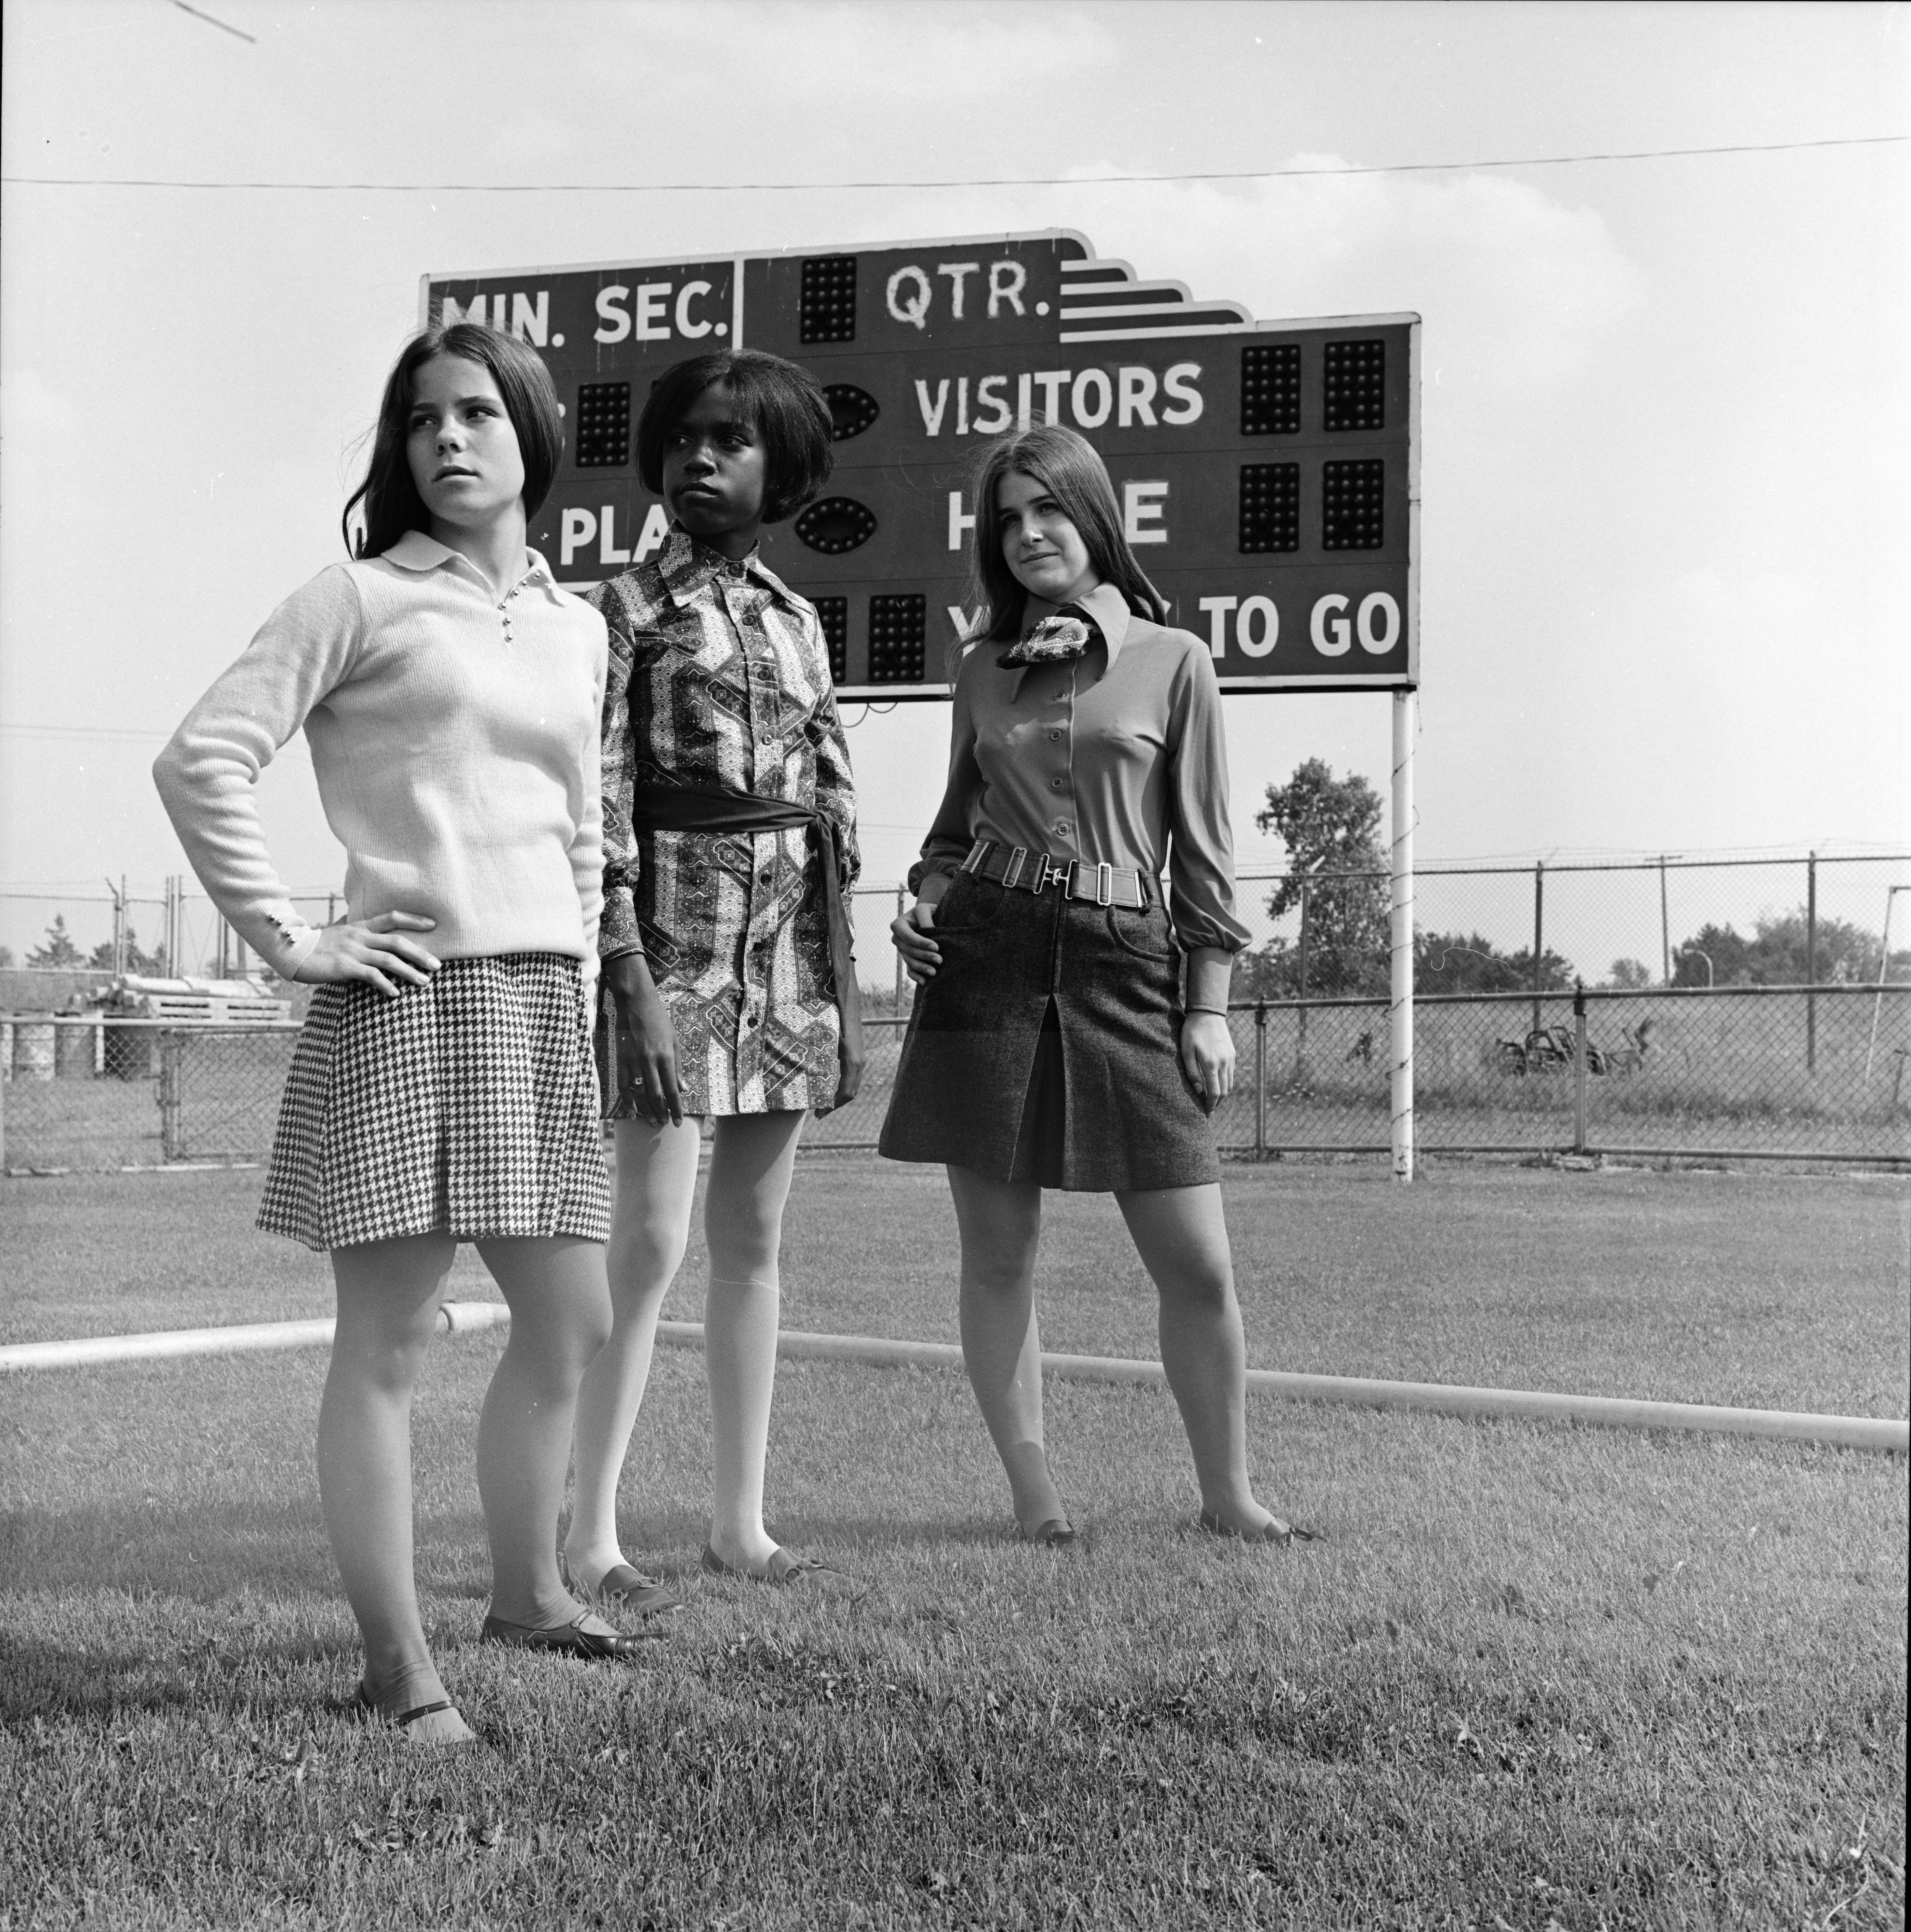 Sabrina Blackwell, Patty Leake, and Mary Gilleland model back-to-school fashions, September 1969 image